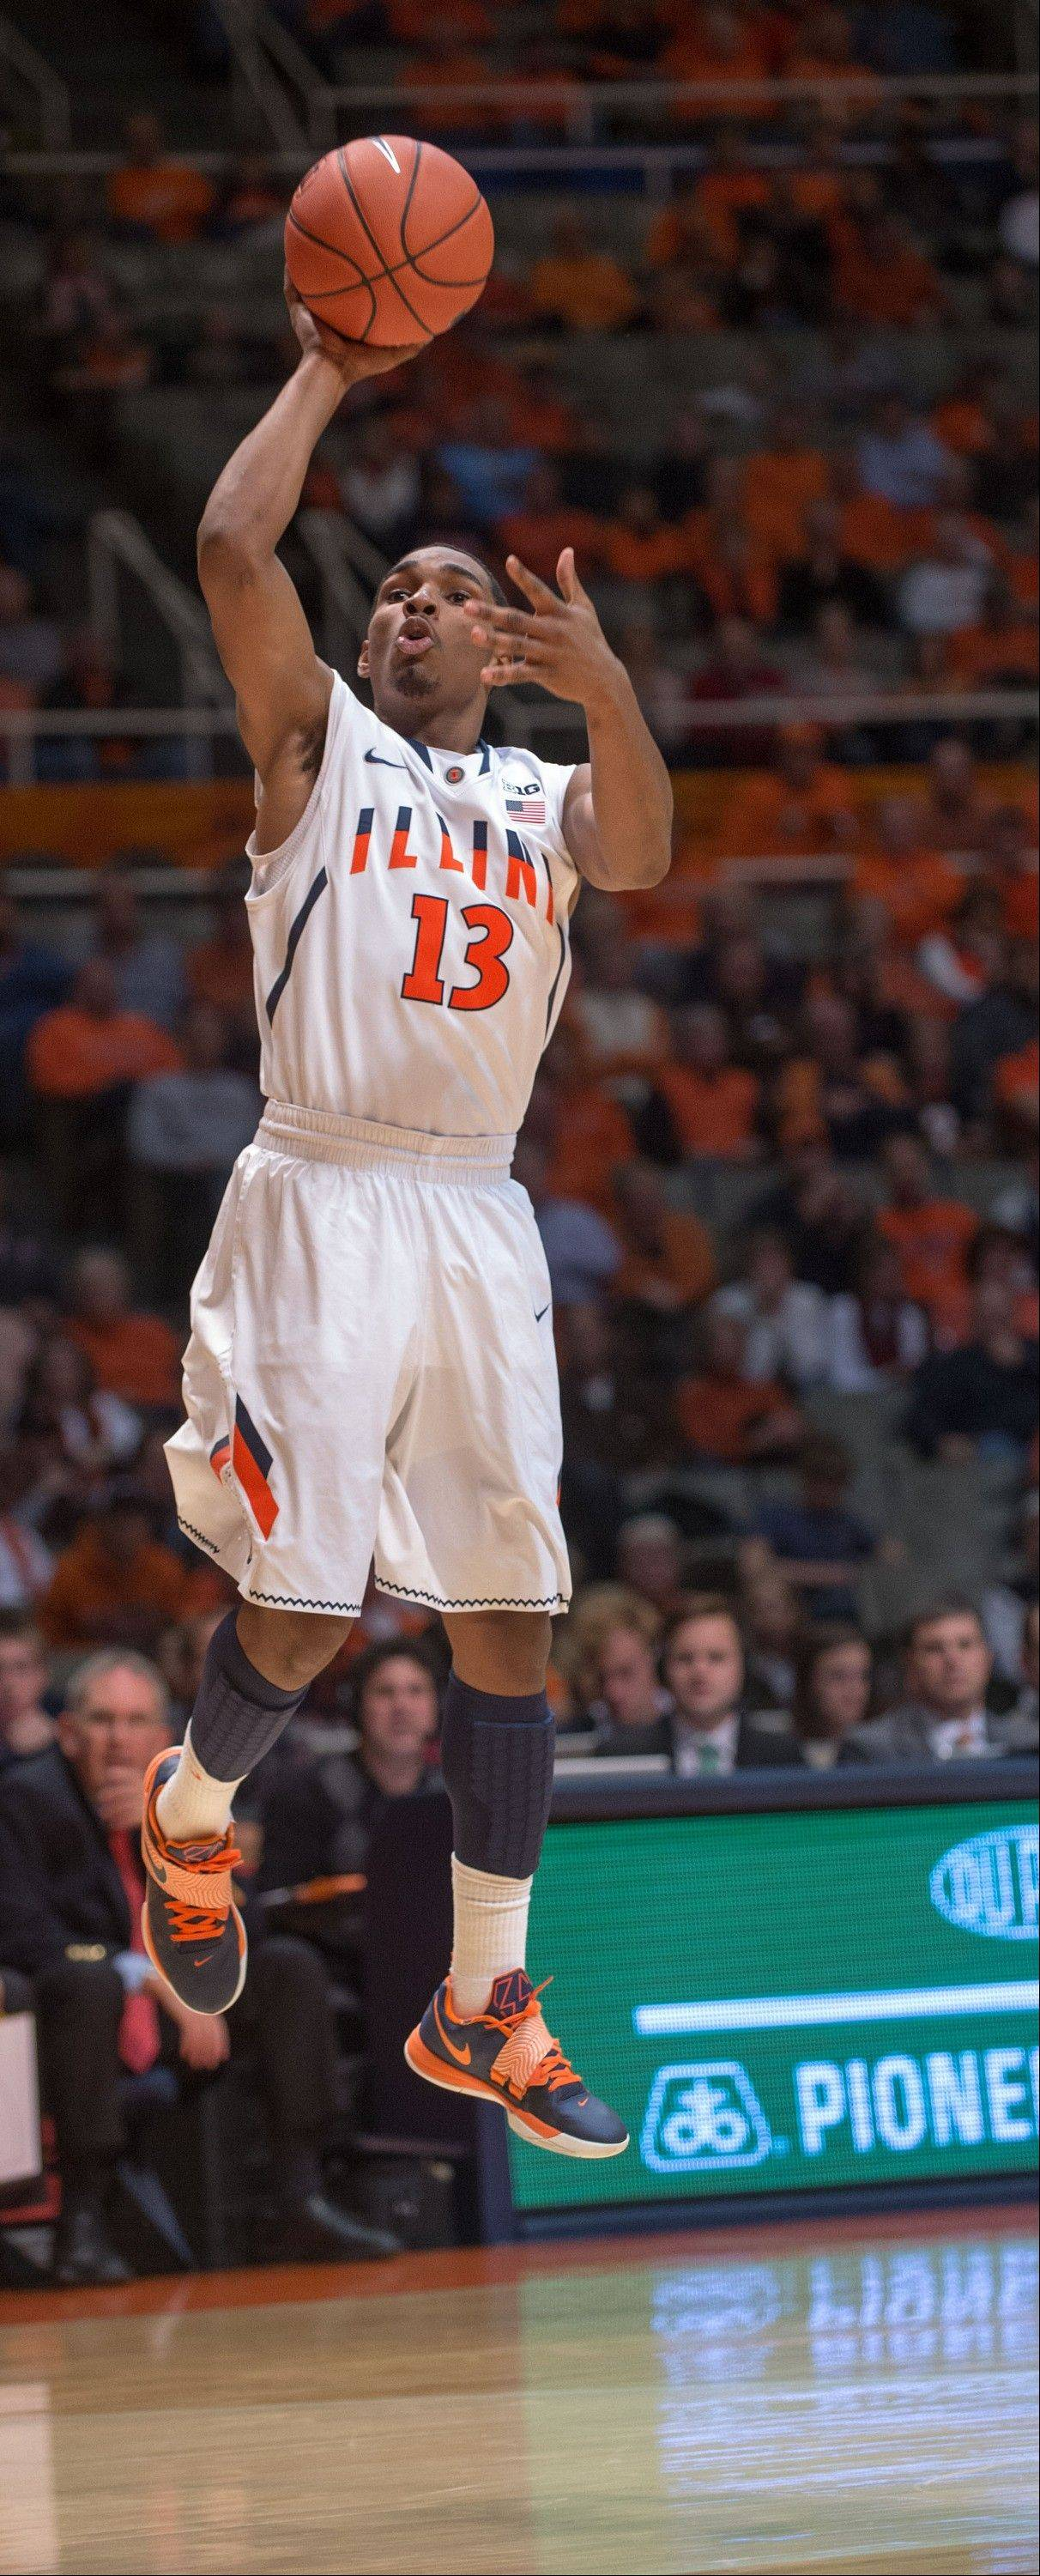 Illinois' Tracy Abrams (13) shoots a three-point basket during the first half of an NCAA college basketball game on Wednesday Nov. 13, 2013, in Champaign, Ill. (AP Photo/Darrell Hoemann)